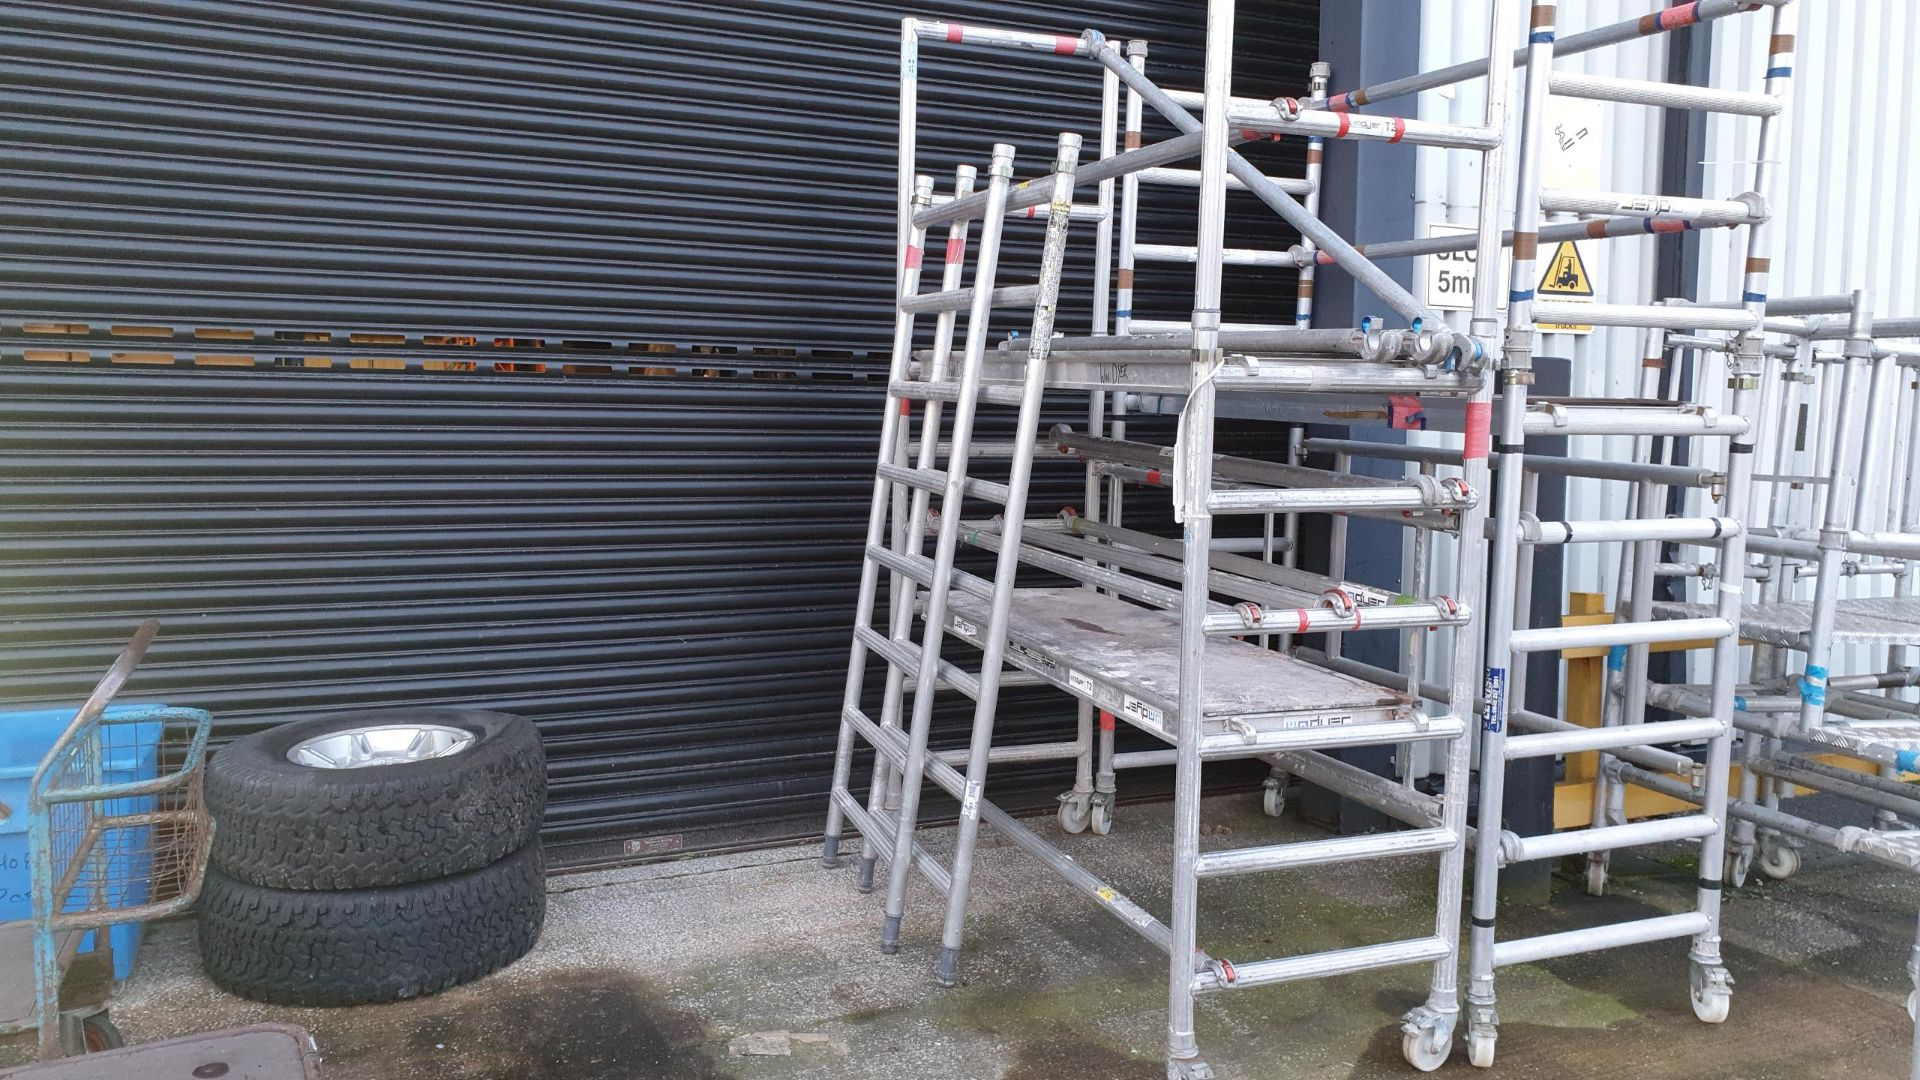 ALIMINIUM SCAFFOLDING TOWER WITH WHEELS EXTENDABLE + 2M CAN REACH 4M HIGH 2 PLATFORMS